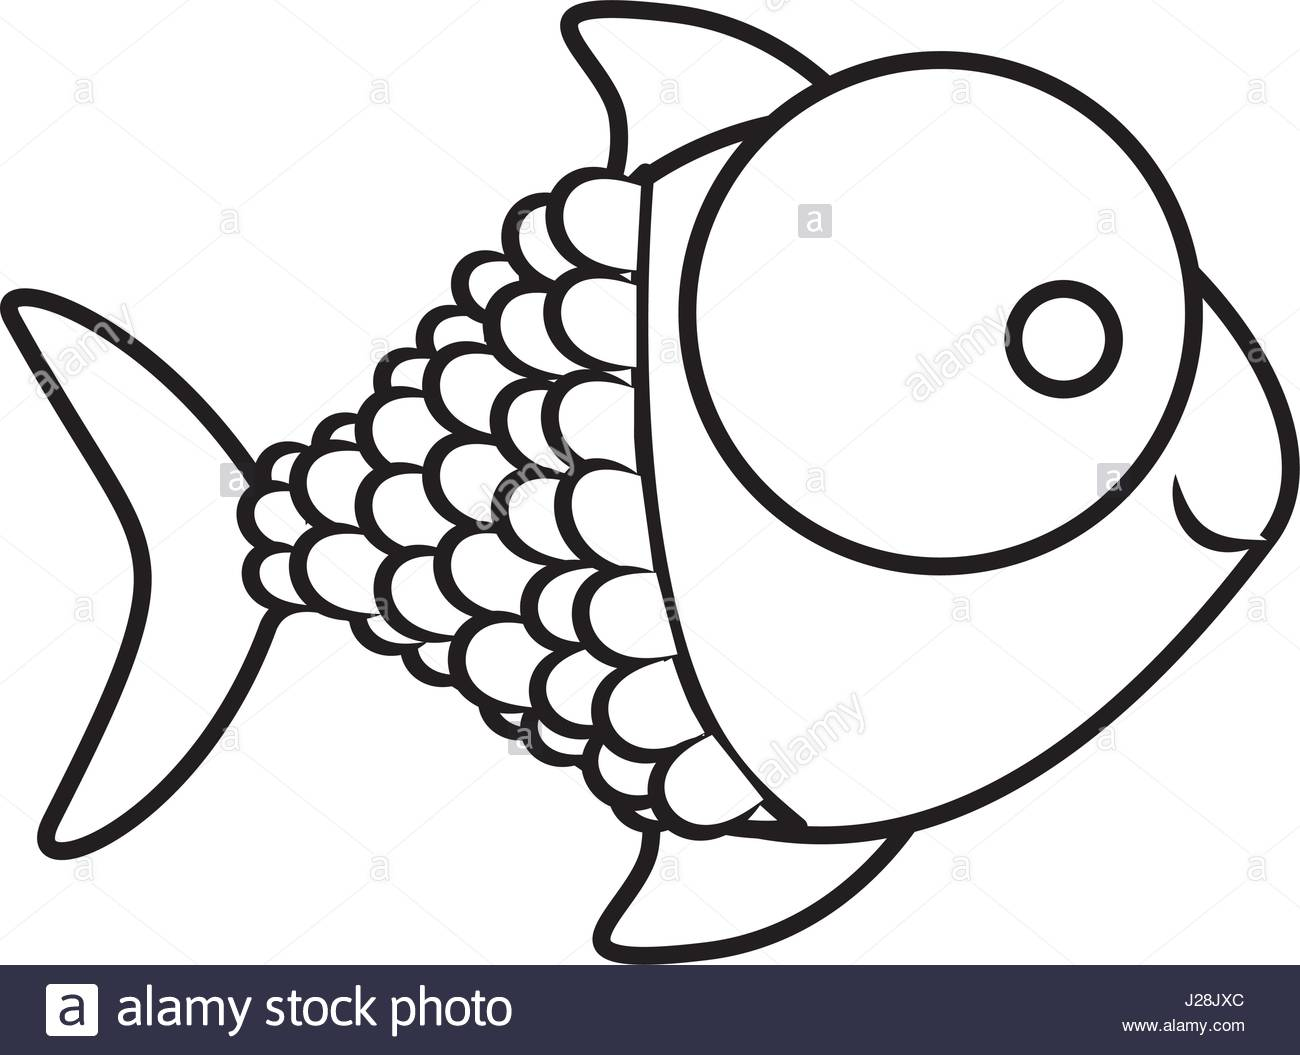 1300x1055 Monochrome Silhouette Of Fish With Big Eye And Scales Stock Vector